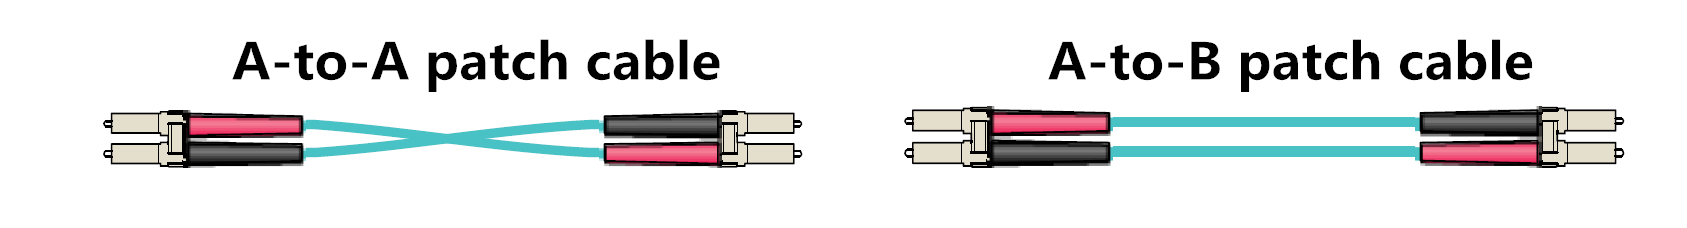 duplex-patch-cable